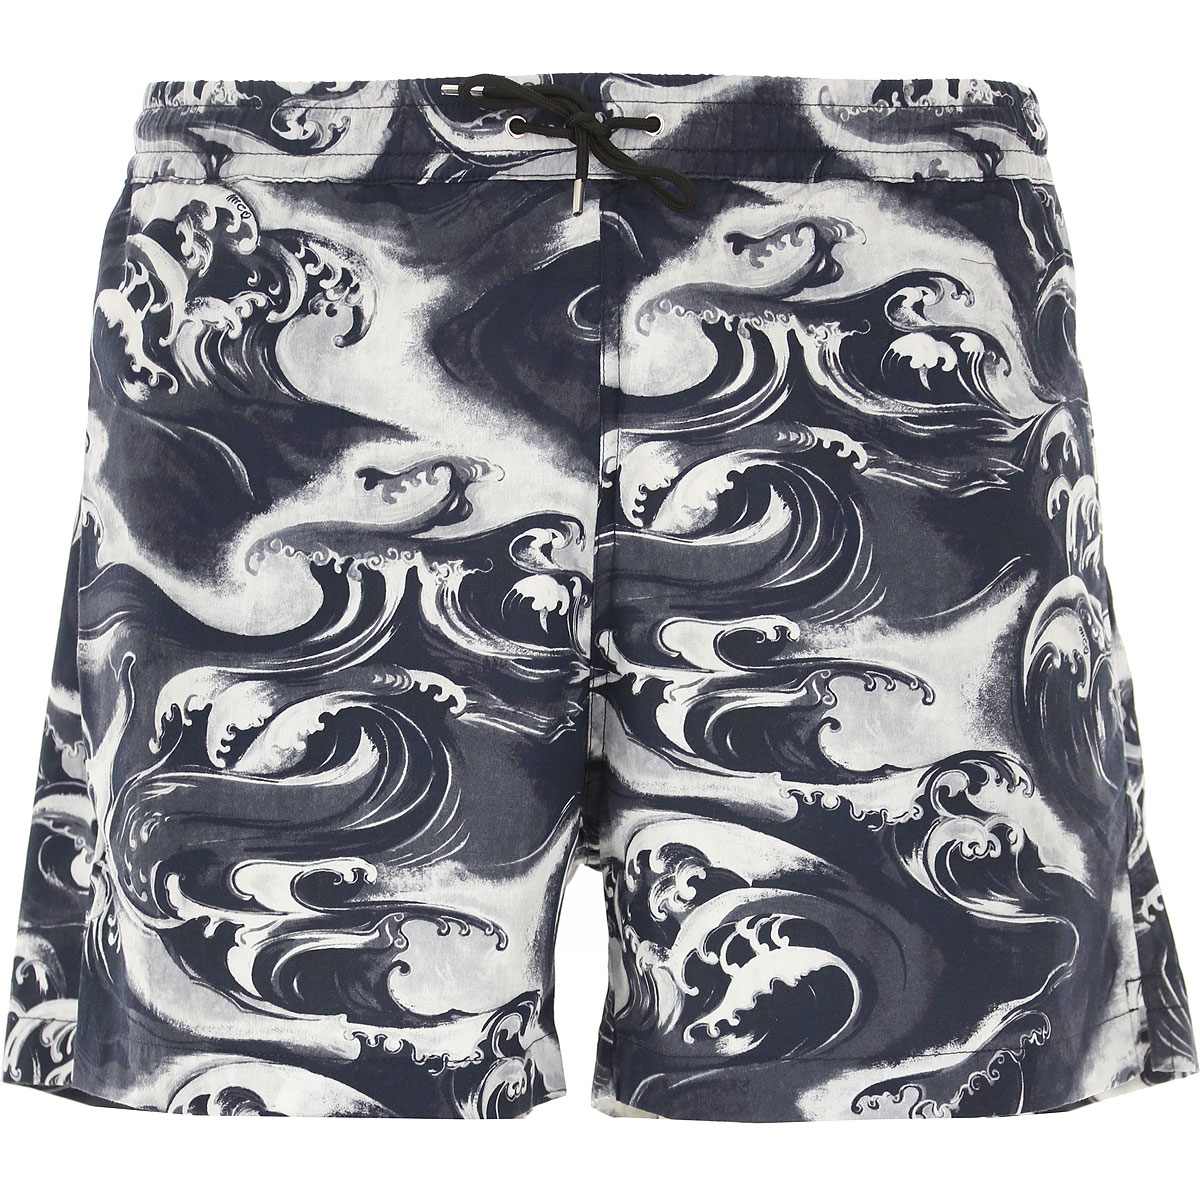 Alexander McQueen McQ Shorts for Men On Sale in Outlet, Black, Cotton, 2019, M XL